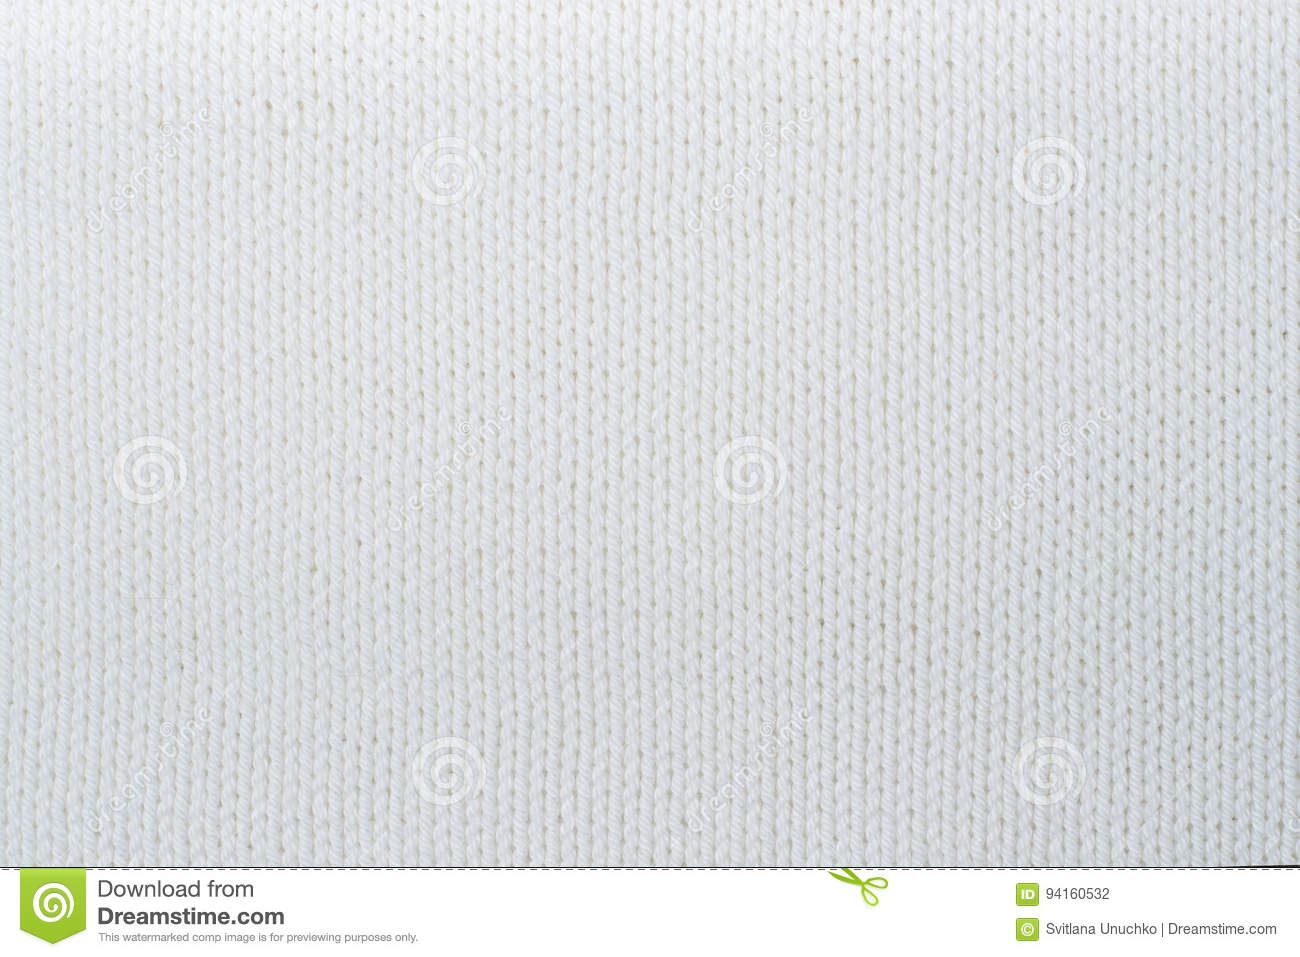 Sweater or scarf fabric texture large knitting. Knitted jersey background with a relief pattern. Wool hand- machine